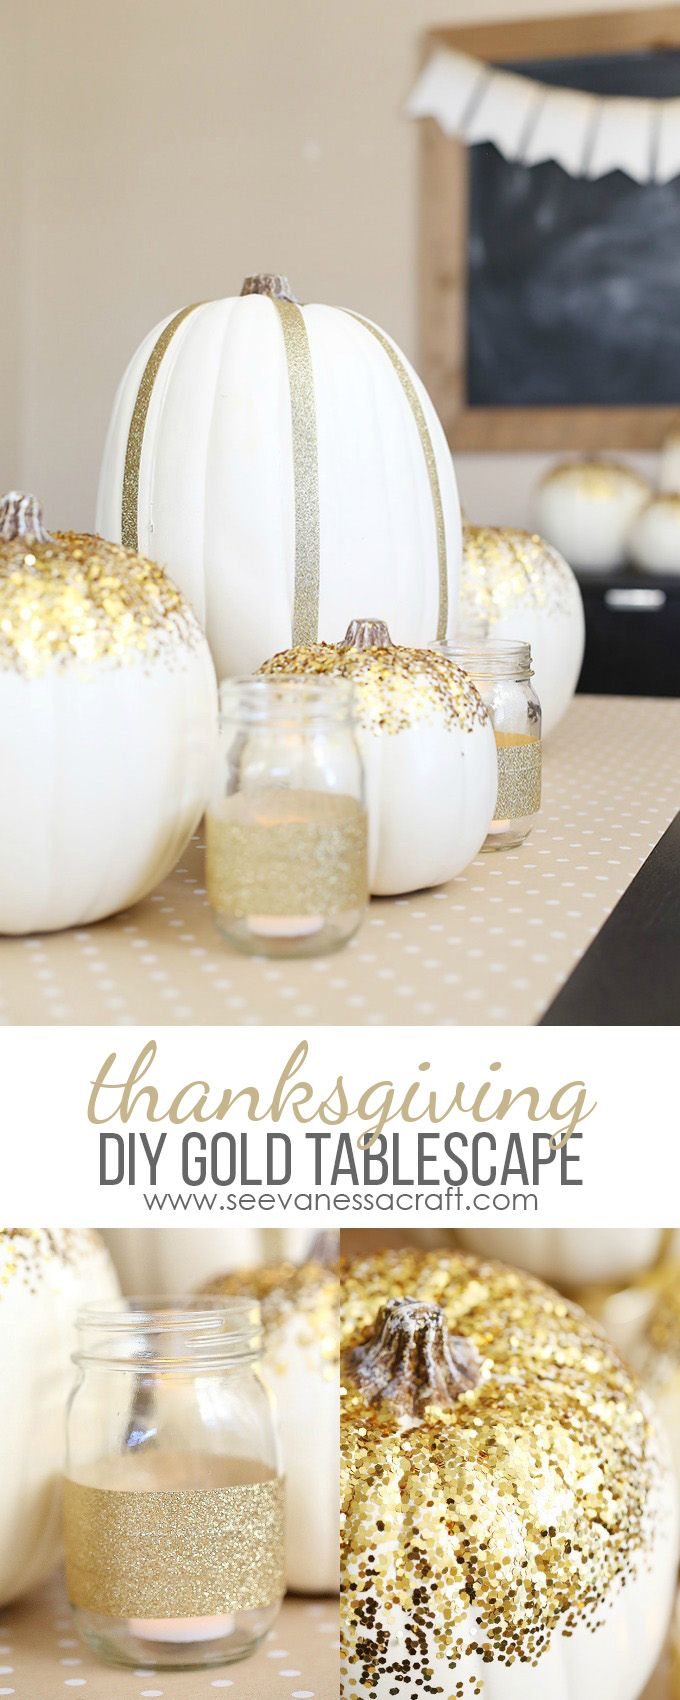 DIY Thanksgiving Gold Tablescape Decor - 3 easy craft projects to transform your Thanksgiving table! #ad #HandsOnCrafty @scotchbrand